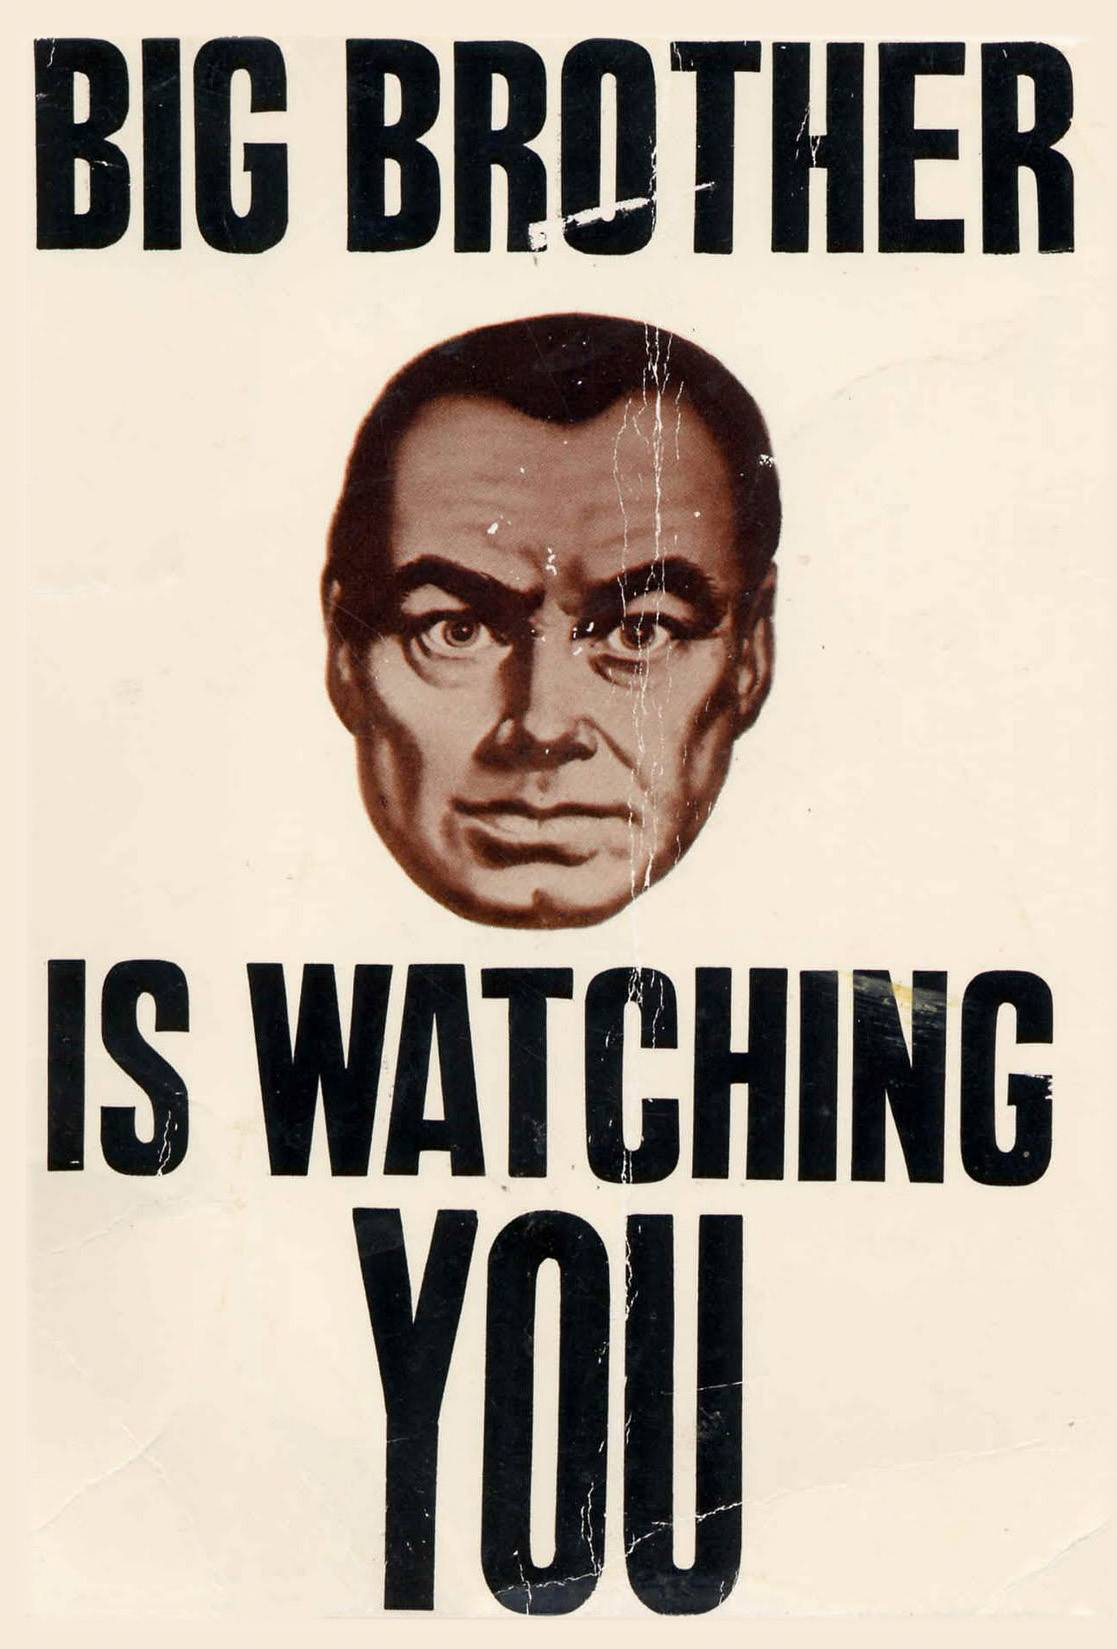 Big Brother is Watching YOU, 1984